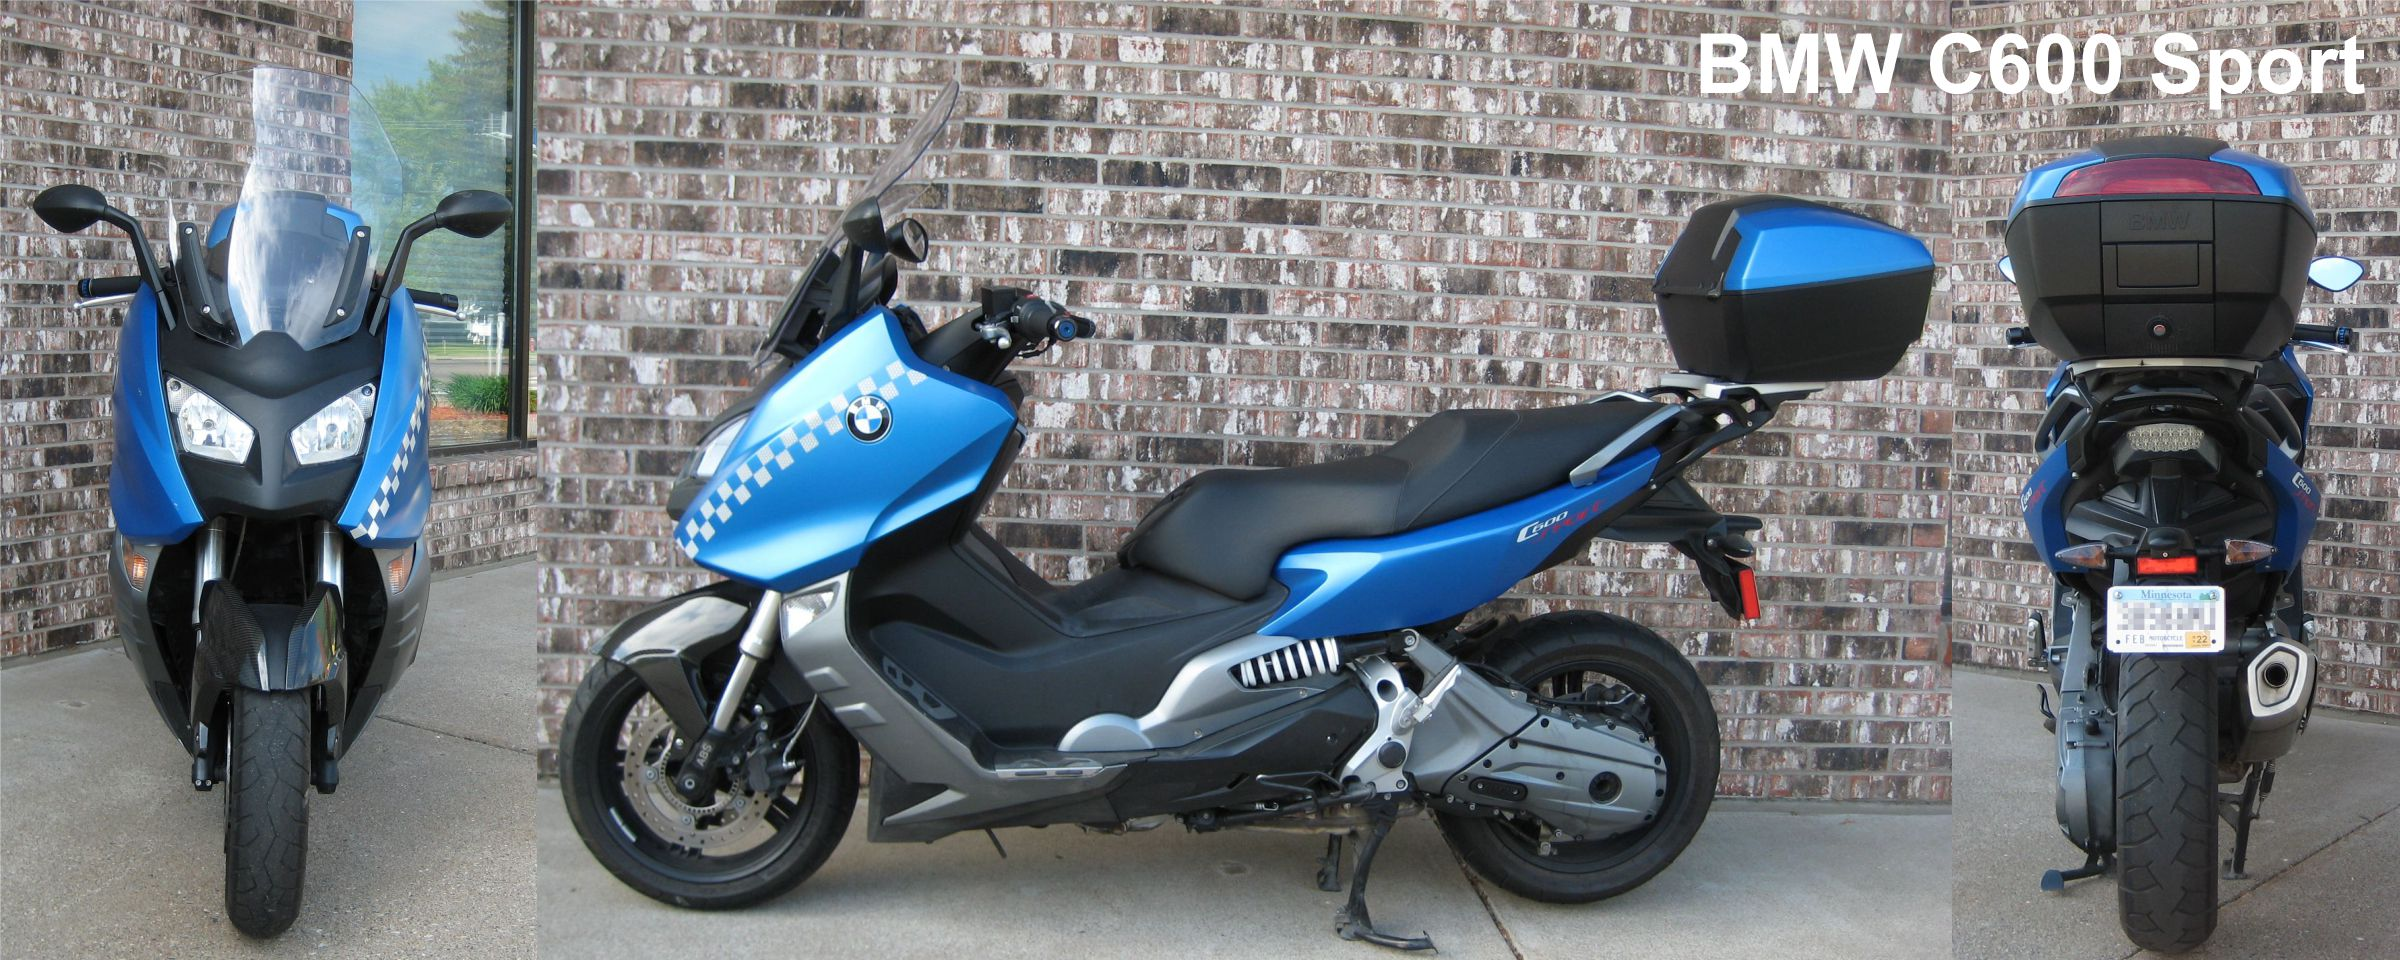 Front, side, and rear view of BMW C600 Sport